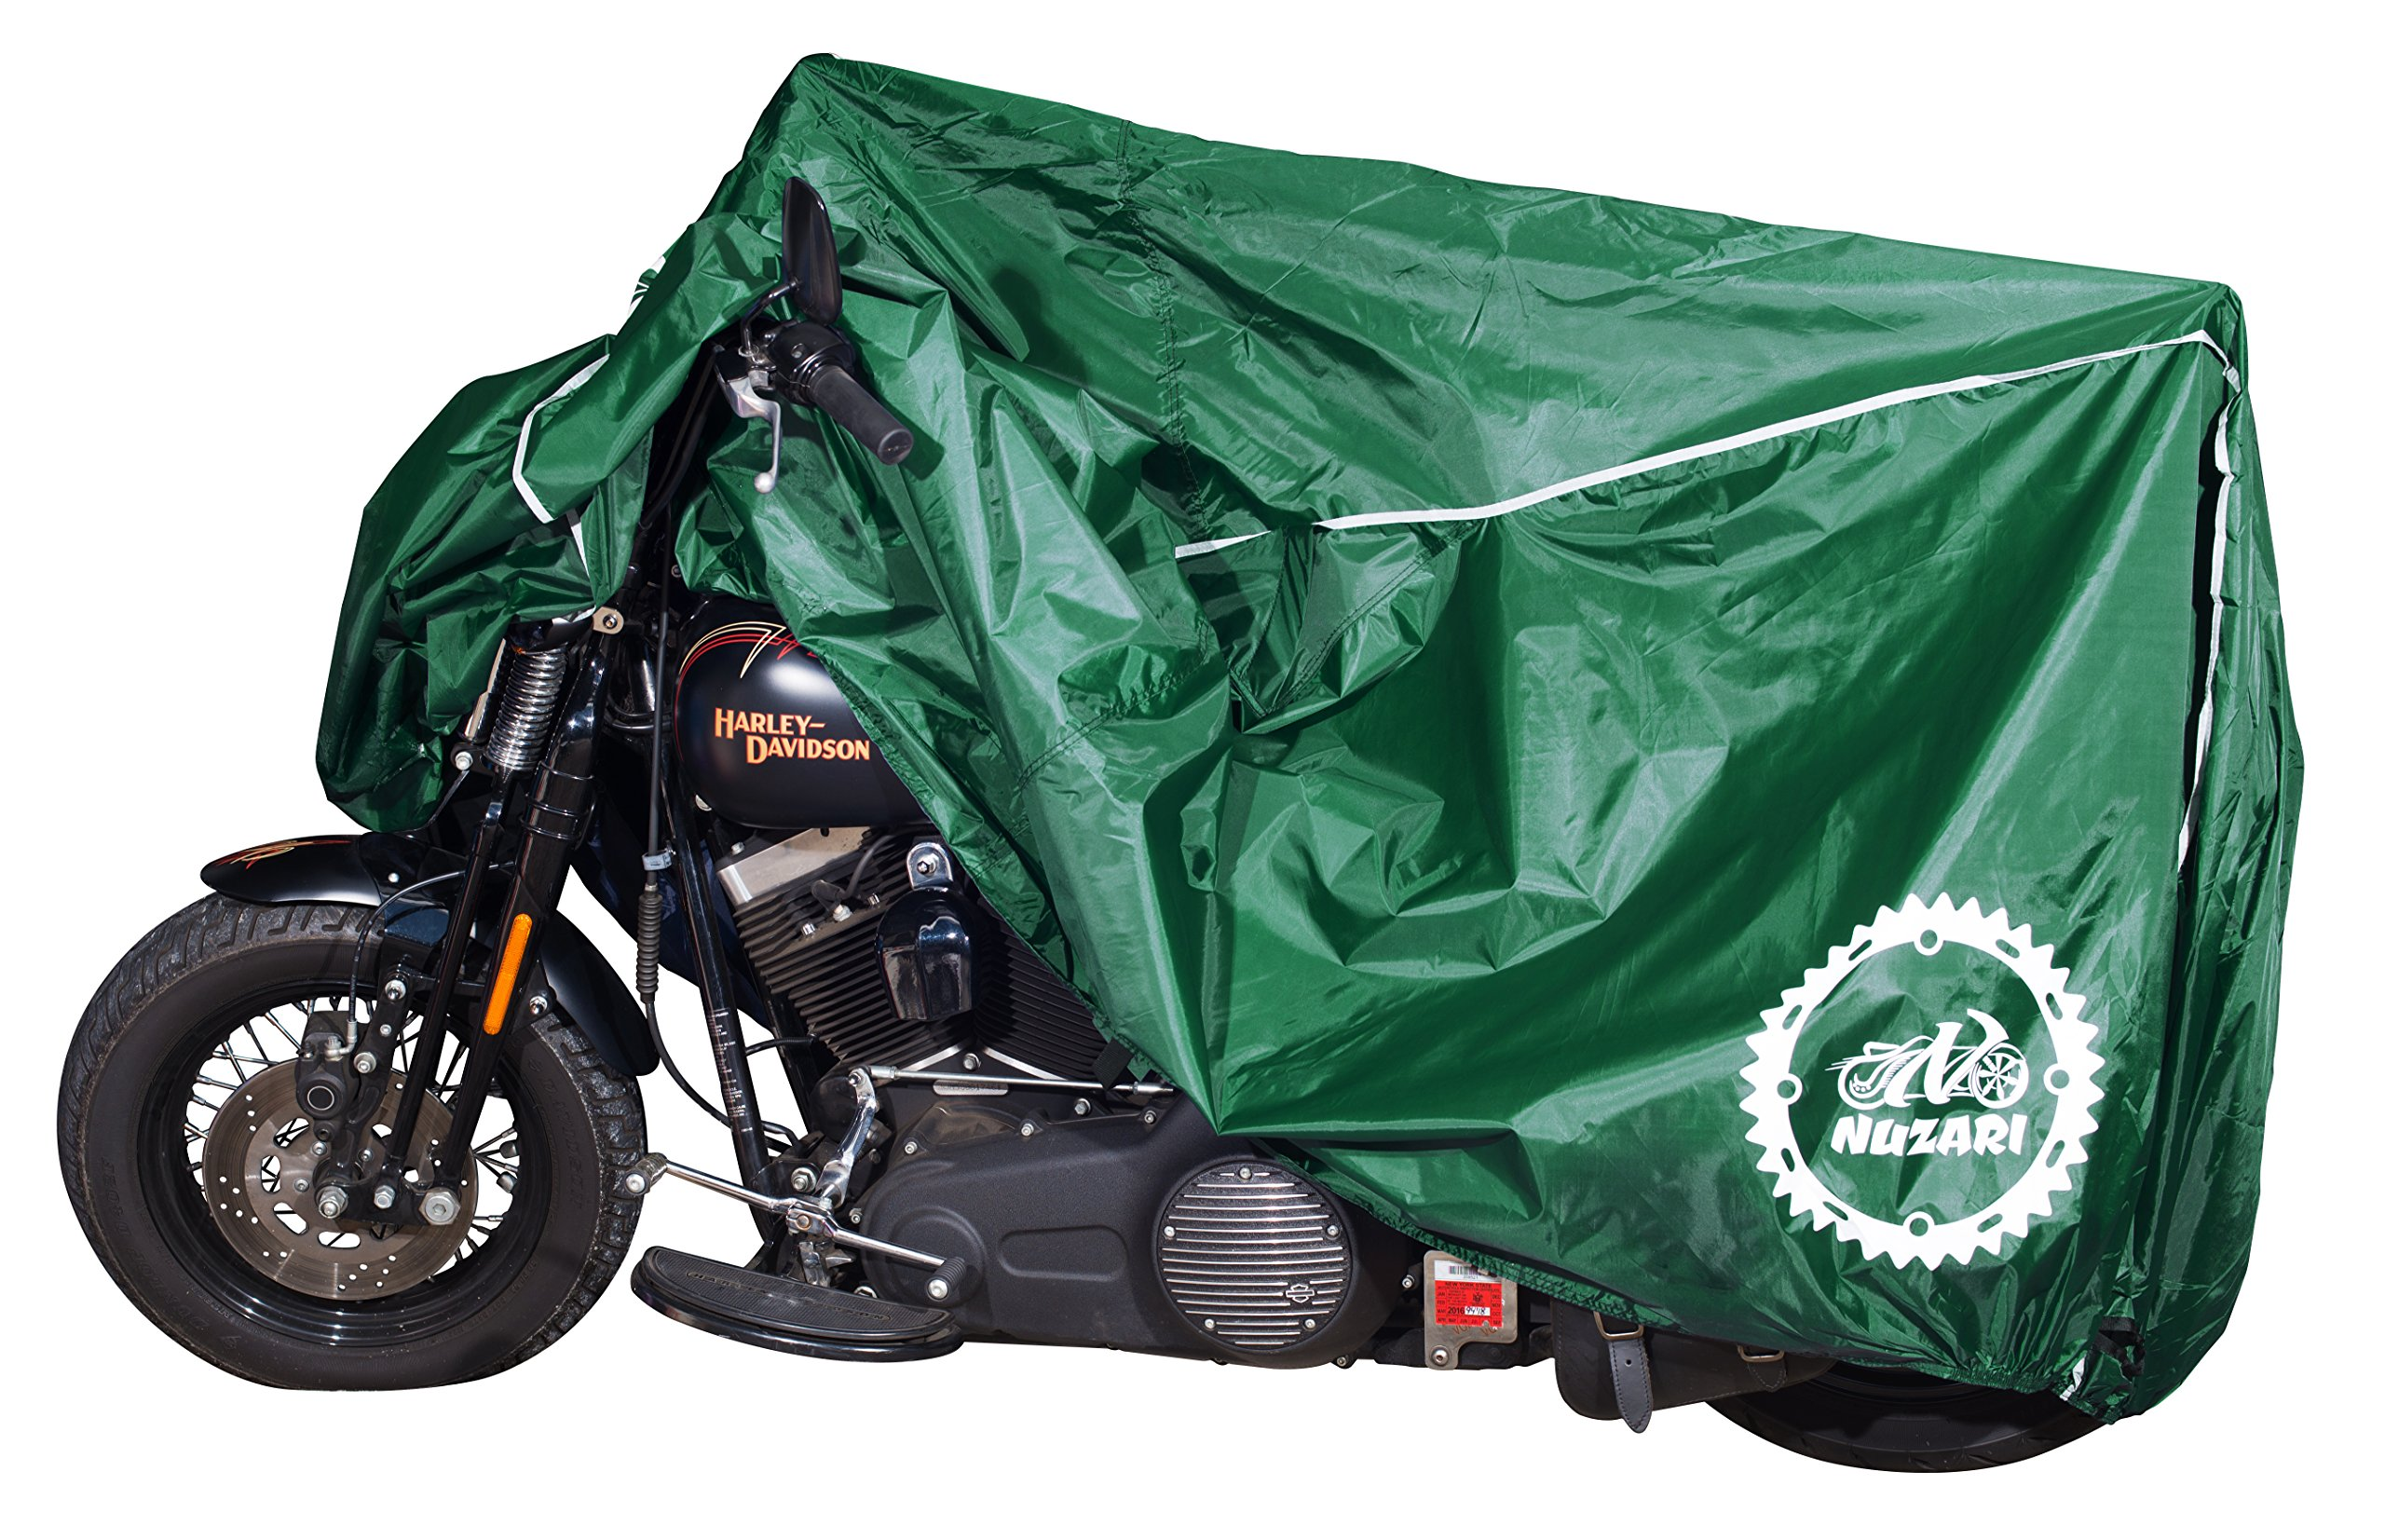 Premium Weather Resistant Covers Waterproof Polyester w/Soft Screen & Heat Resistant Shields.Motorcycle Cover has Lockable fabric, Durable & Long Lasting.Sportbikes & Cruisers (XX-large, Hunter Green) by Nuzari